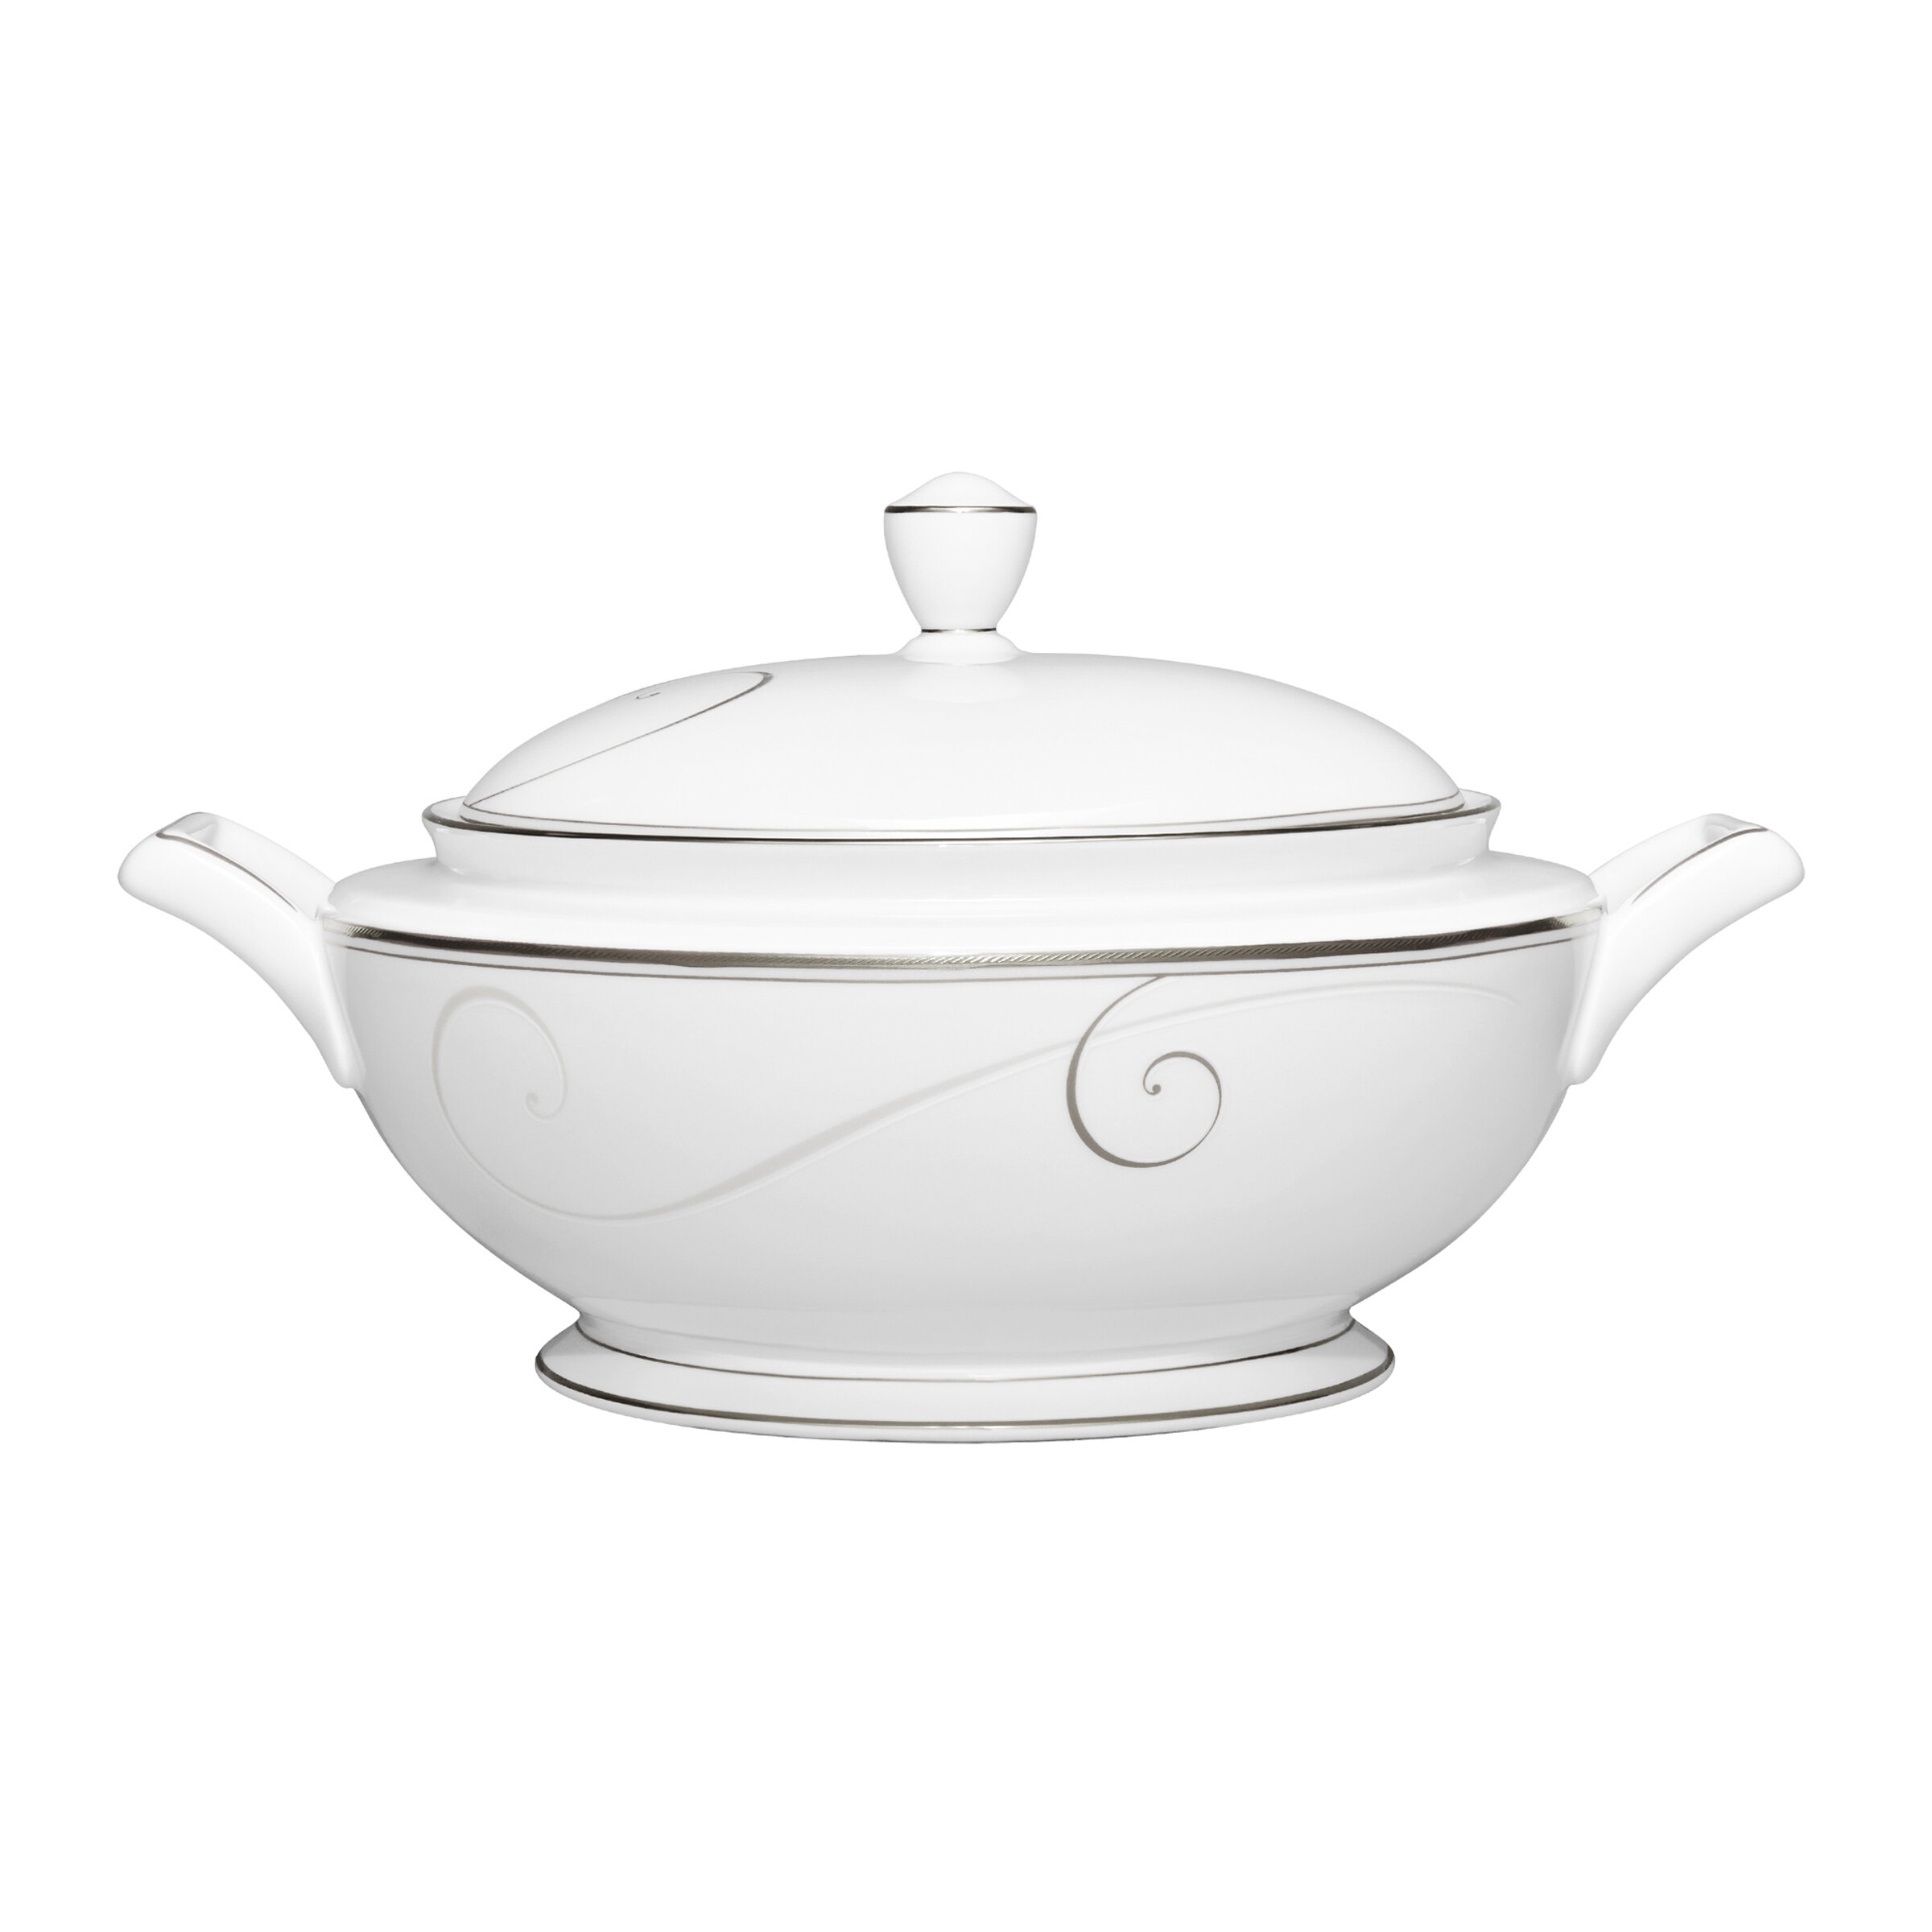 Noritake Platinum Wave 67 oz  Covered Vegetable Bowl | Wayfair